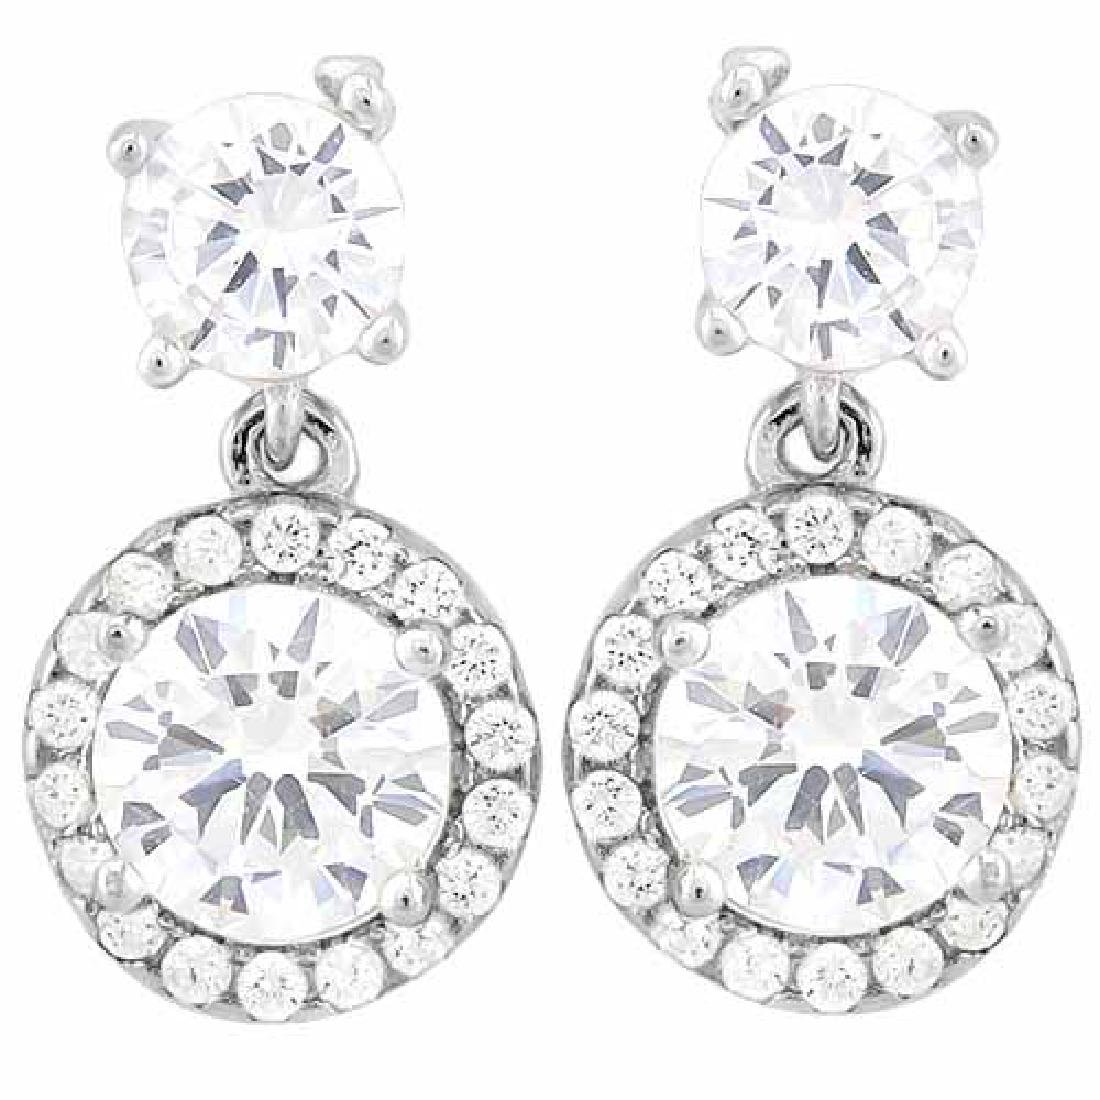 4 CARAT (40 PCS) FLAWLESS CREATED DIAMOND 925 STERLING